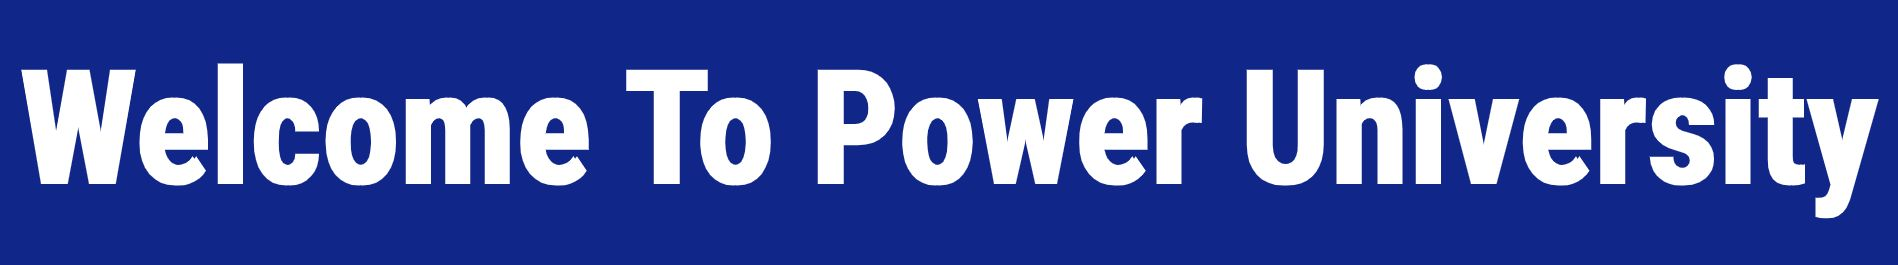 welcome to power university banner text